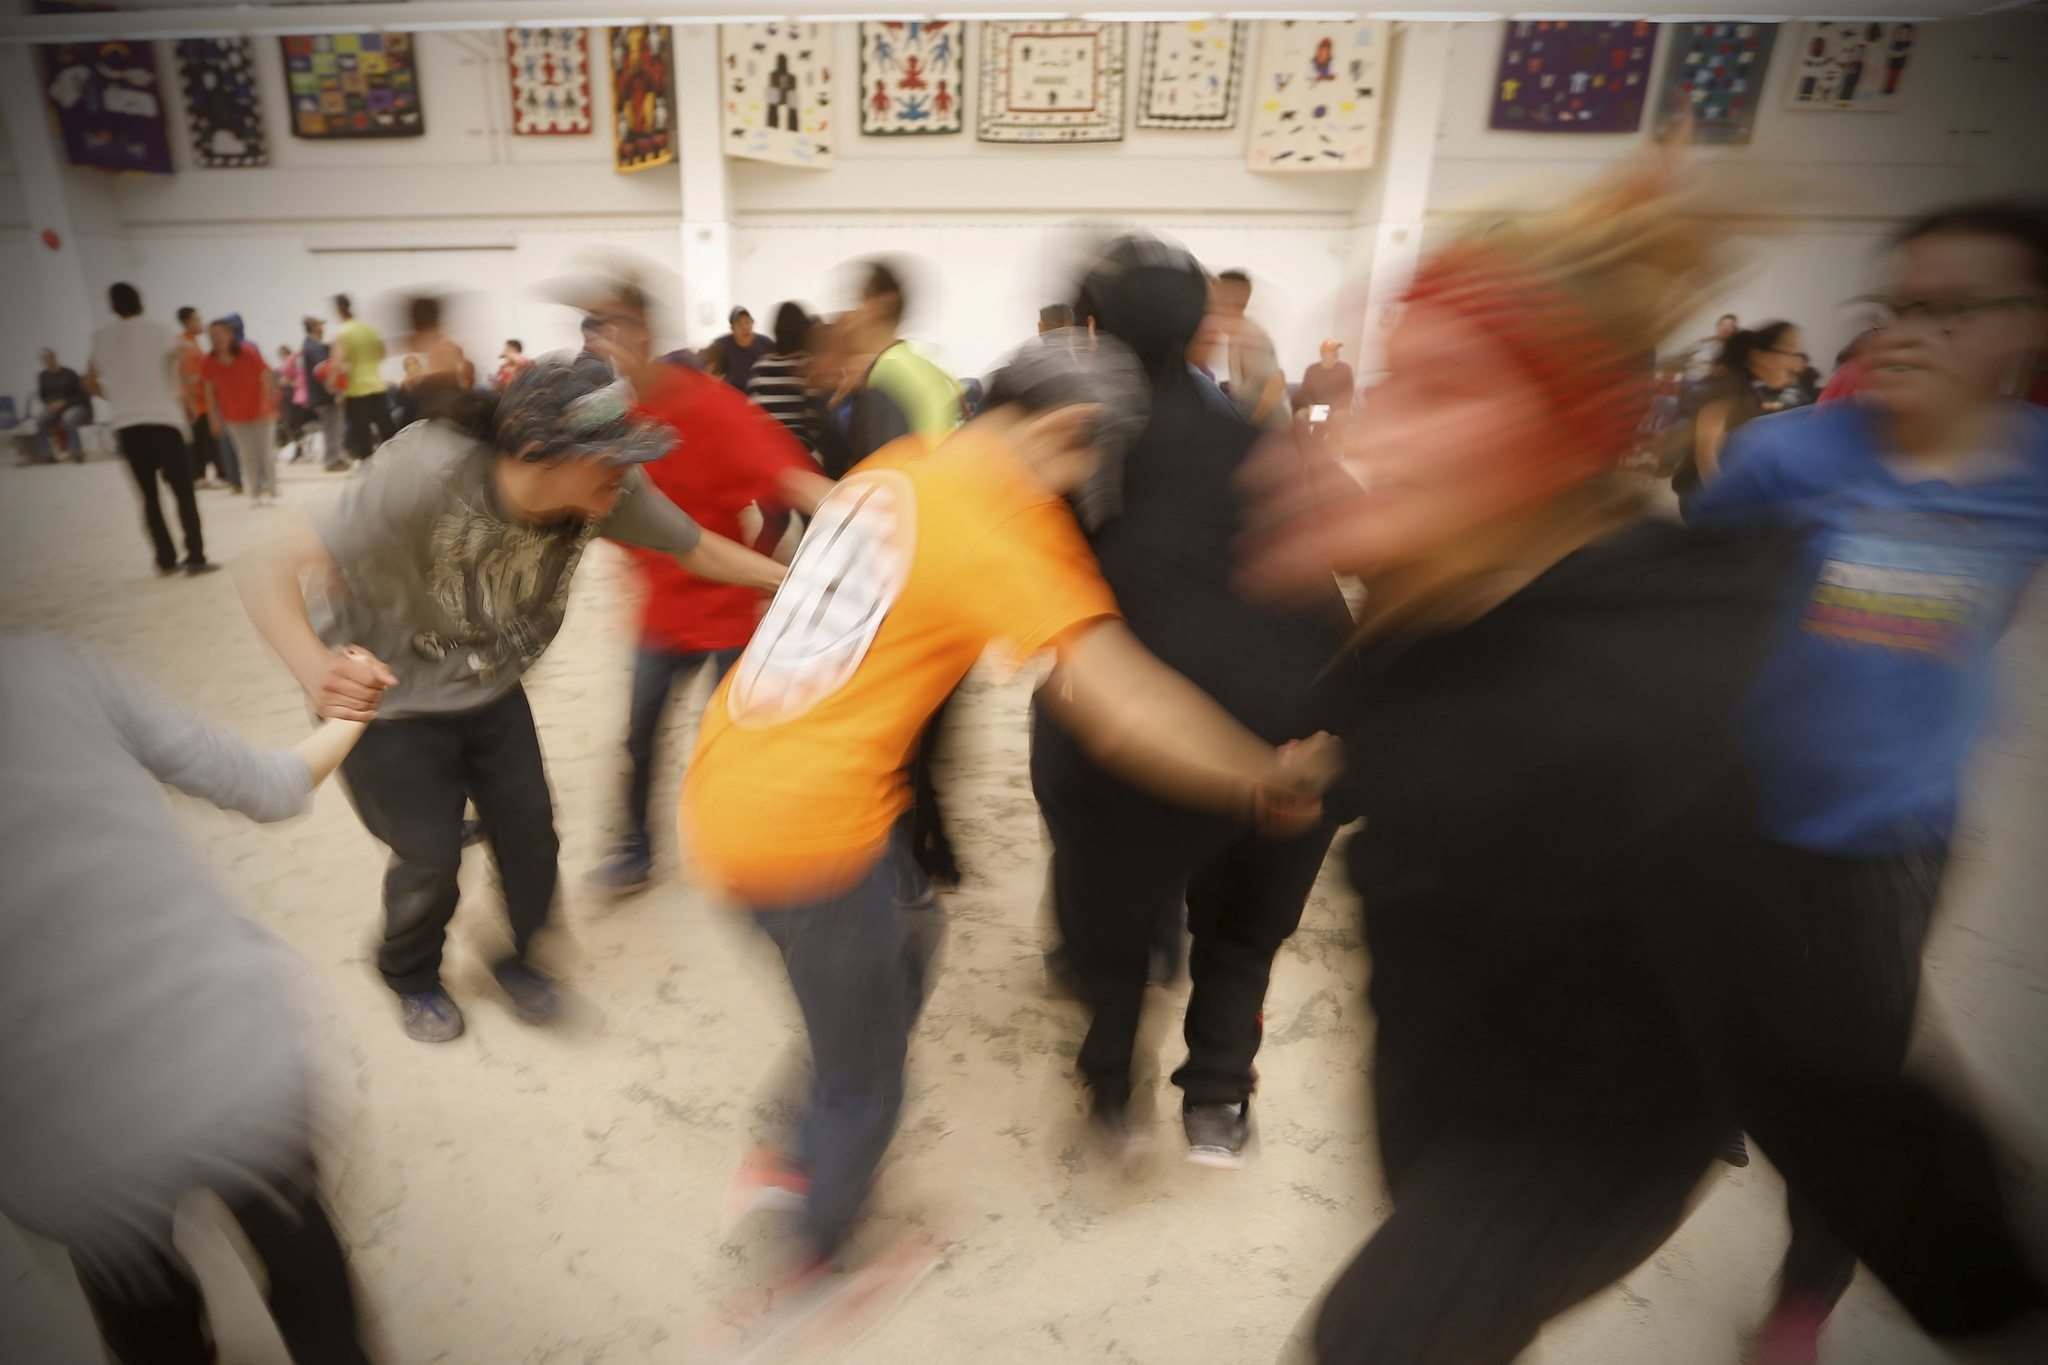 JOHN WOODS / WINNIPEG FREE PRESS</p><p>Baker Lake will hold a community dance at the drop of a hat, and the stamina of the dancers and musicians is nothing short of astounding.</p></p>